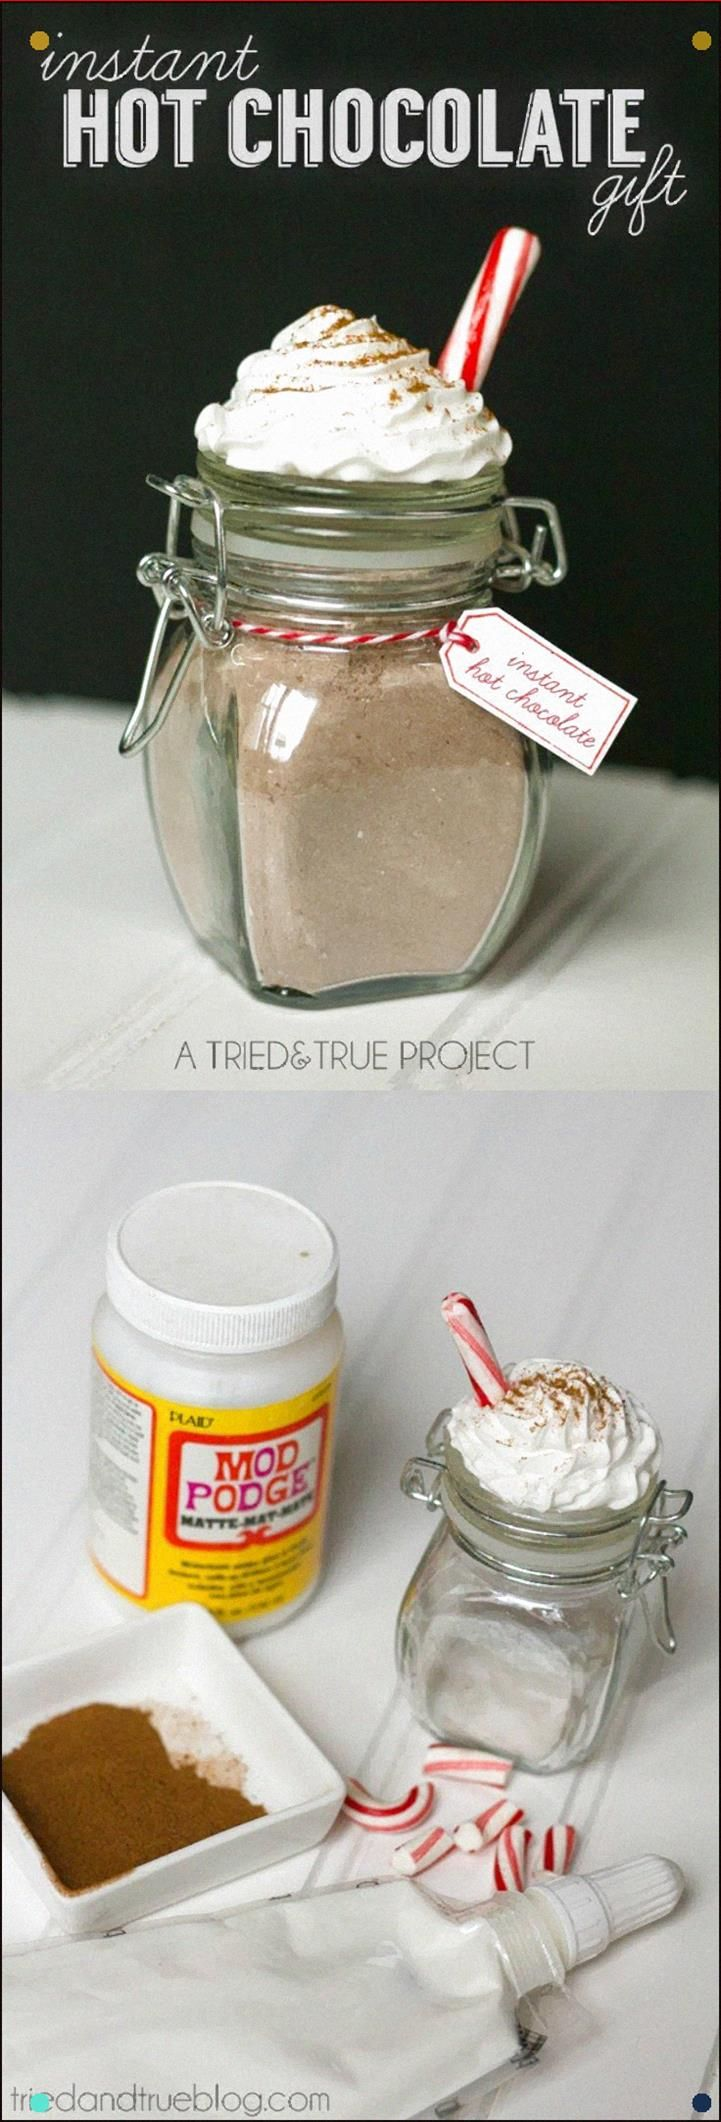 Use Mod Podge Collage Clay To Create The Look Of Real Whipped Cream On This Hot …